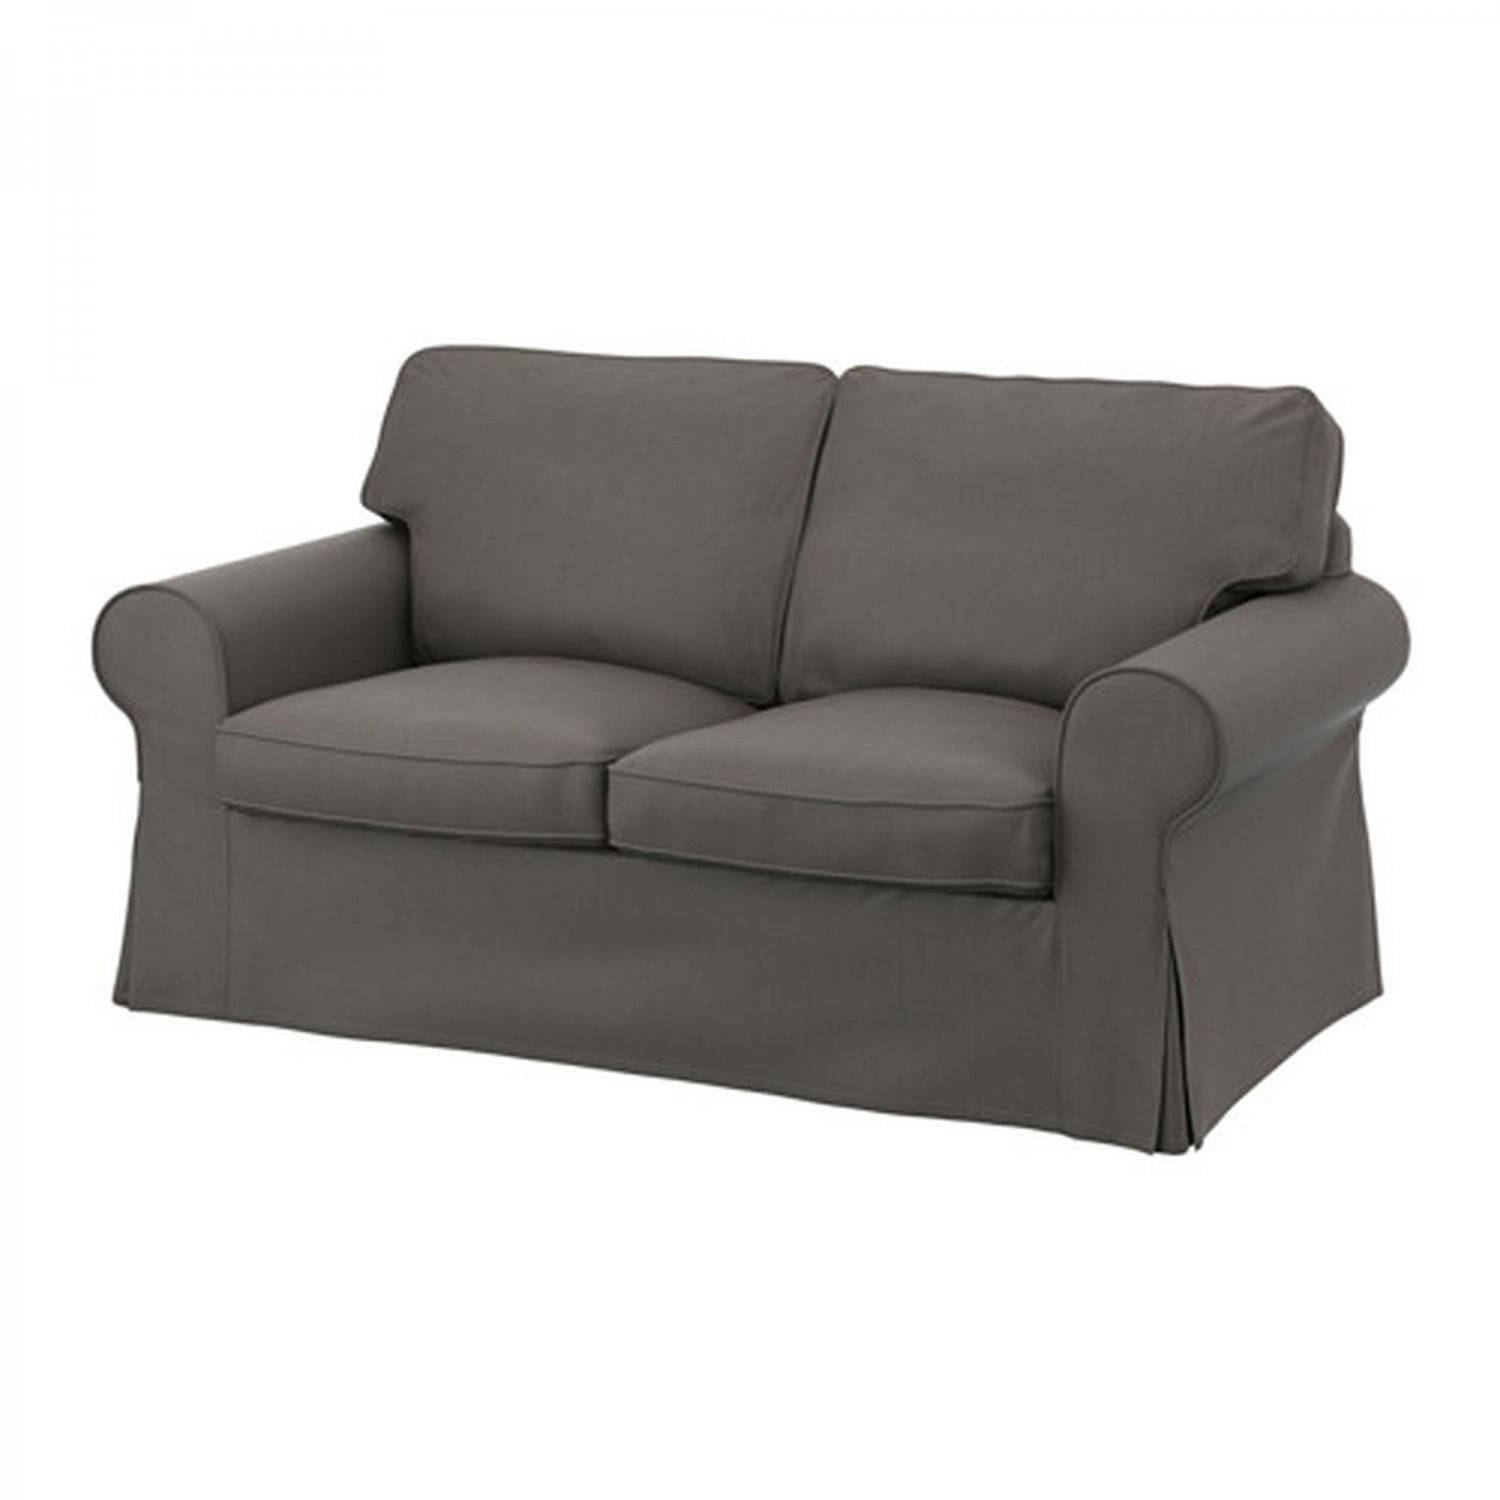 Ikea ektorp 2 seat sofa cover loveseat slipcover nordvalla gray grey Cover for loveseat